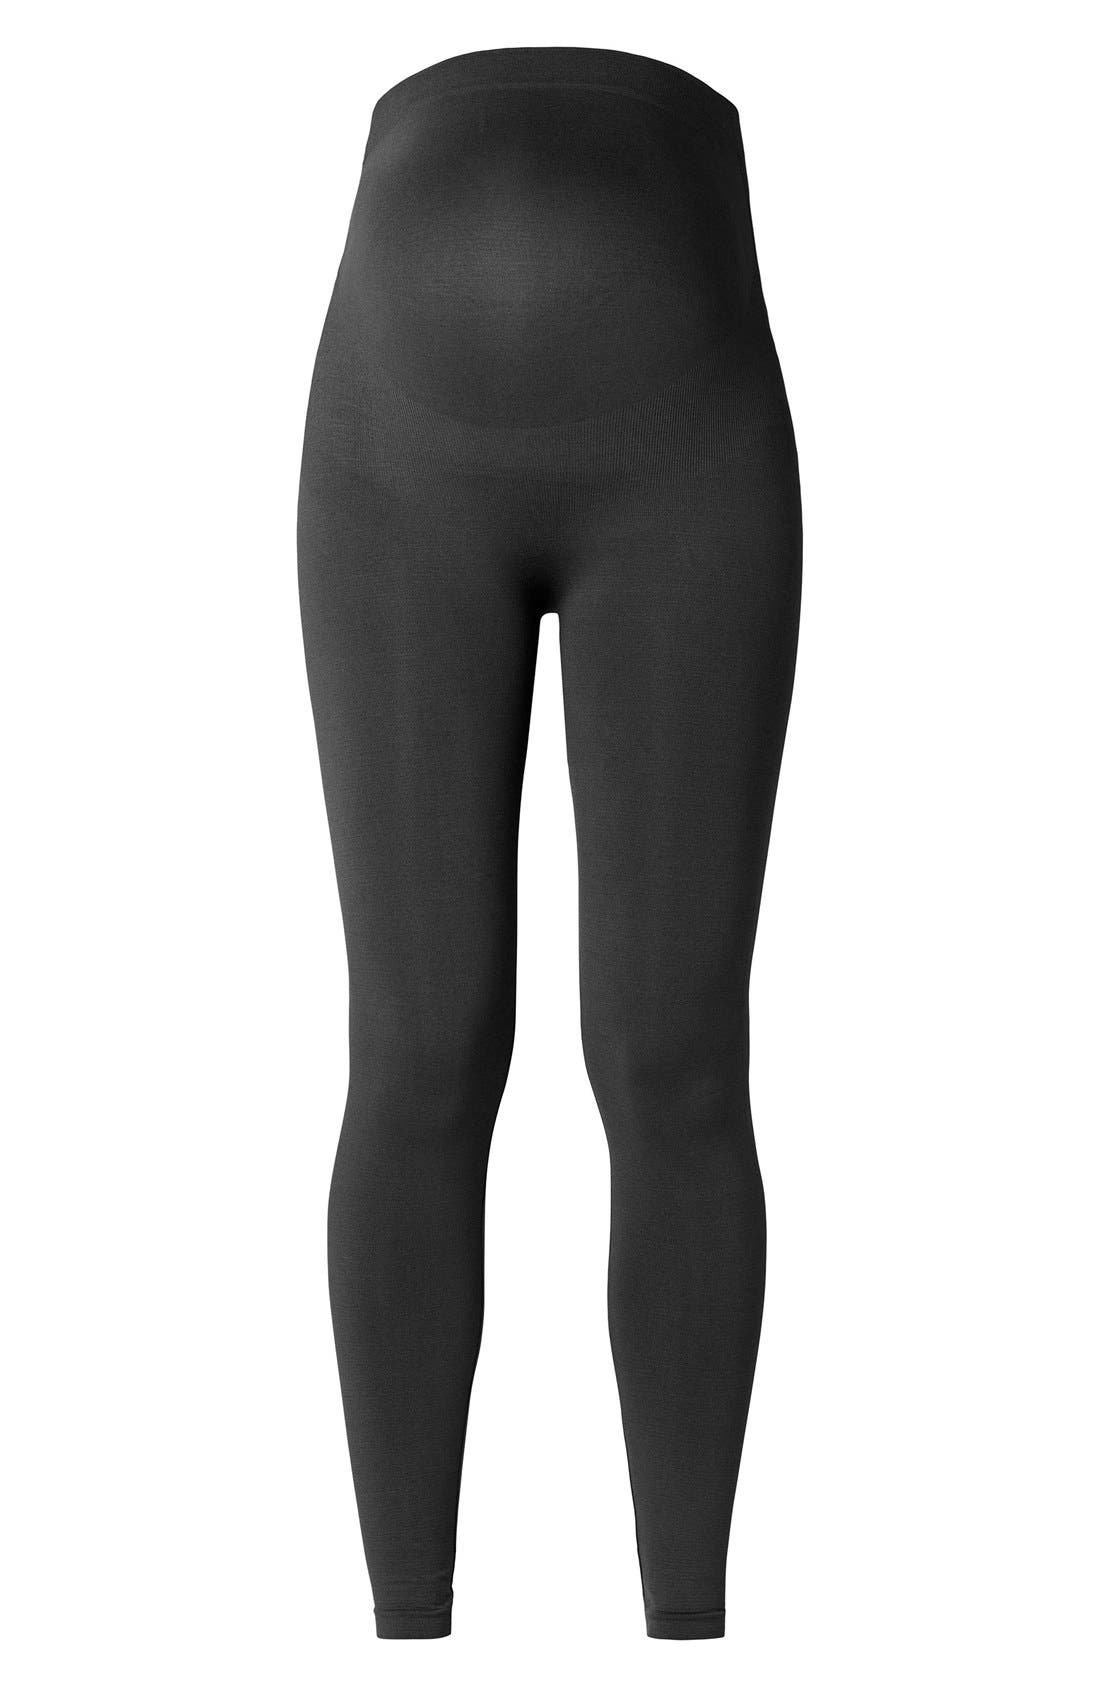 'Cara' Seamless Maternity Leggings,                         Main,                         color, Black